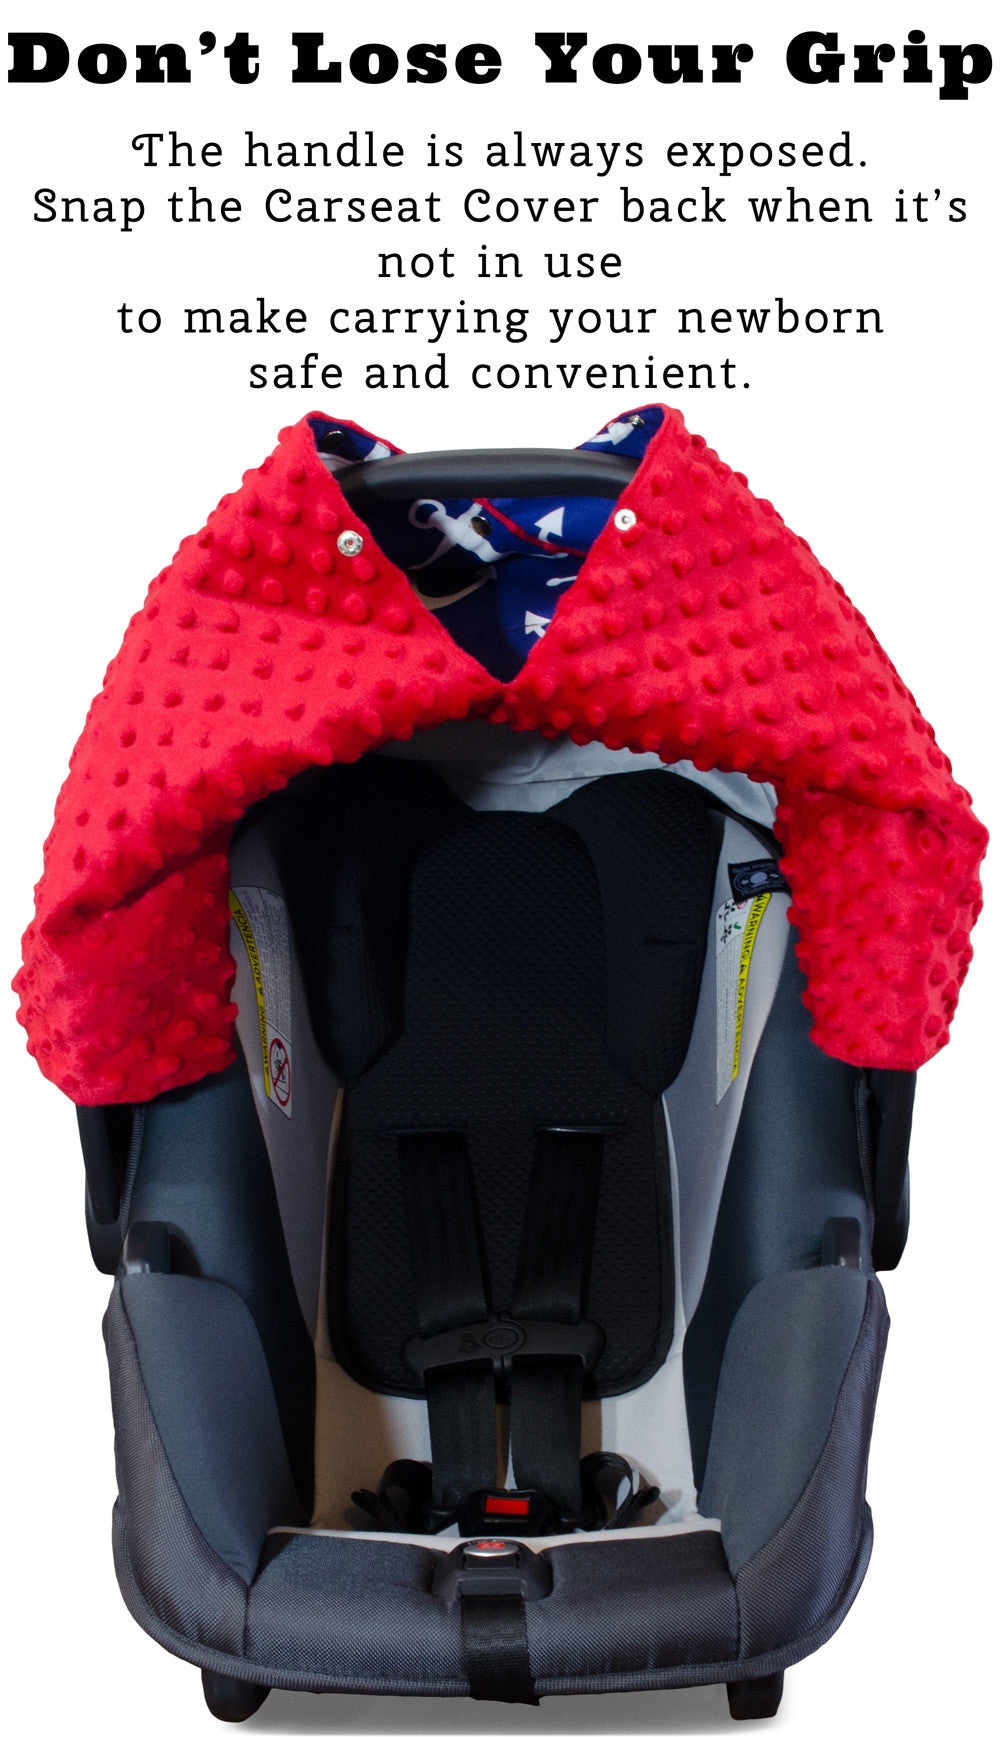 Nautical Anchor Car Seat Canopy With Red Dot Minky And Peekaboo OpeningTM